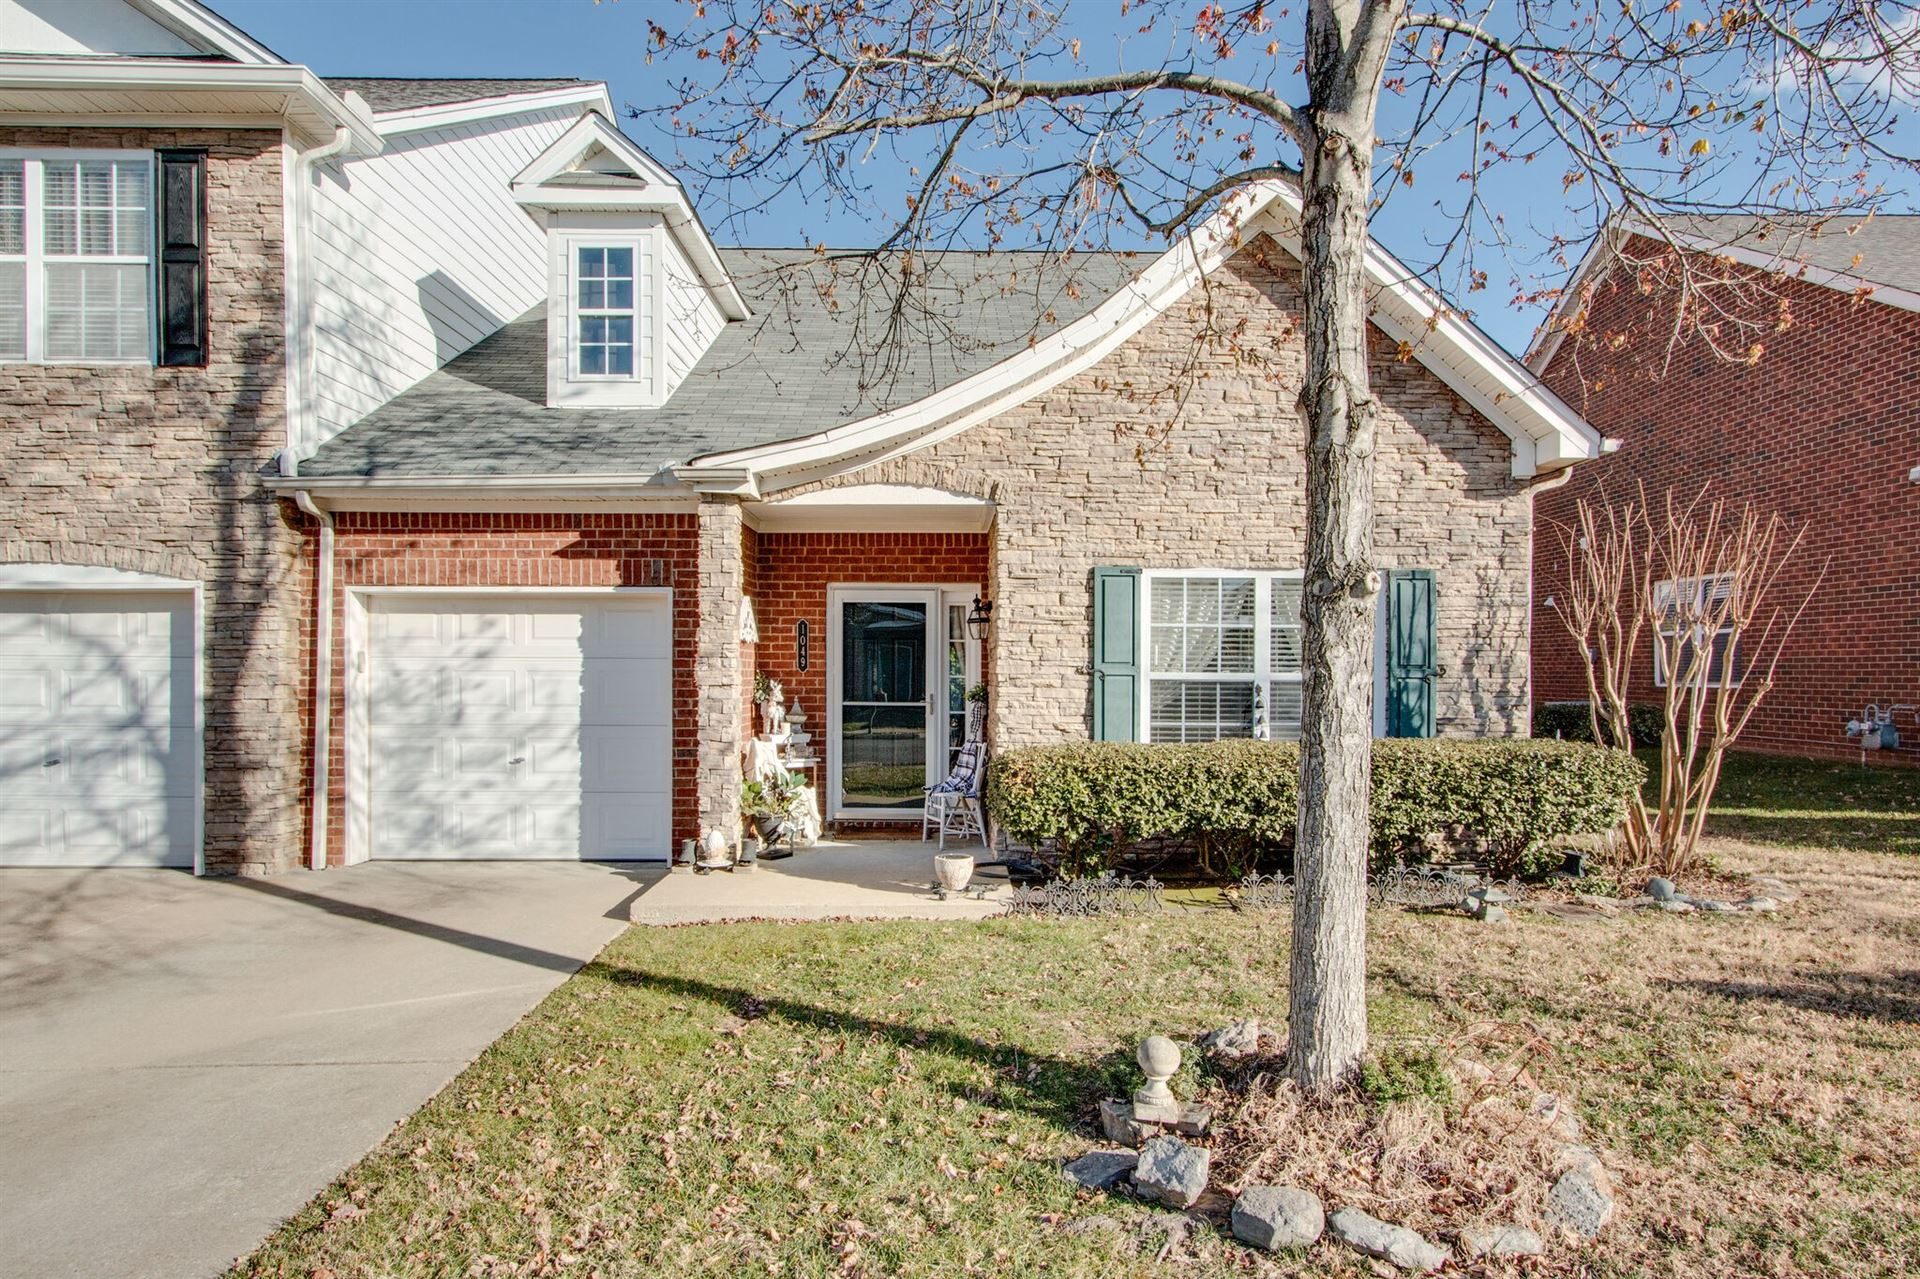 1049 Misty Morn Cir, Spring Hill, TN 37174 - MLS#: 2231506